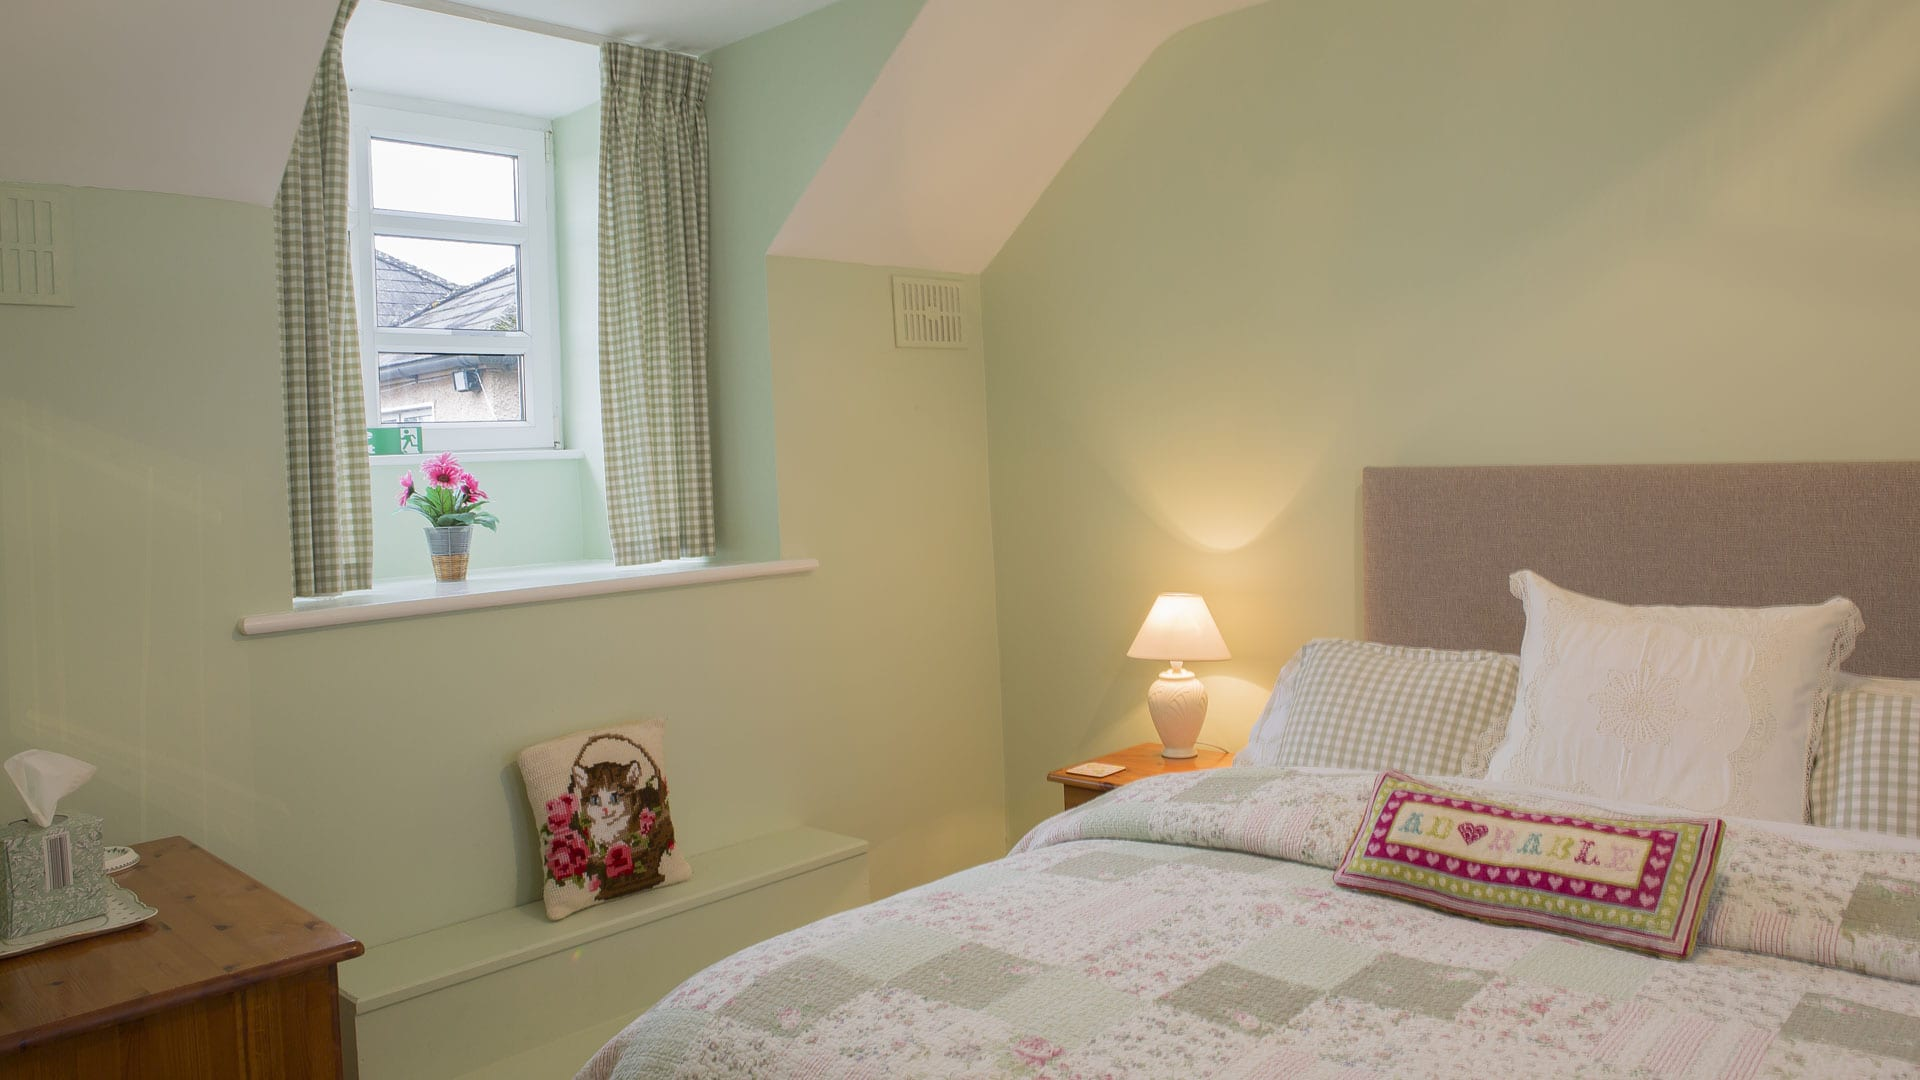 Double-Bed-Bedroom-Room-Window--Holiday-Homes-Ireland-Meath-Dunshaughlin-Self-Catering